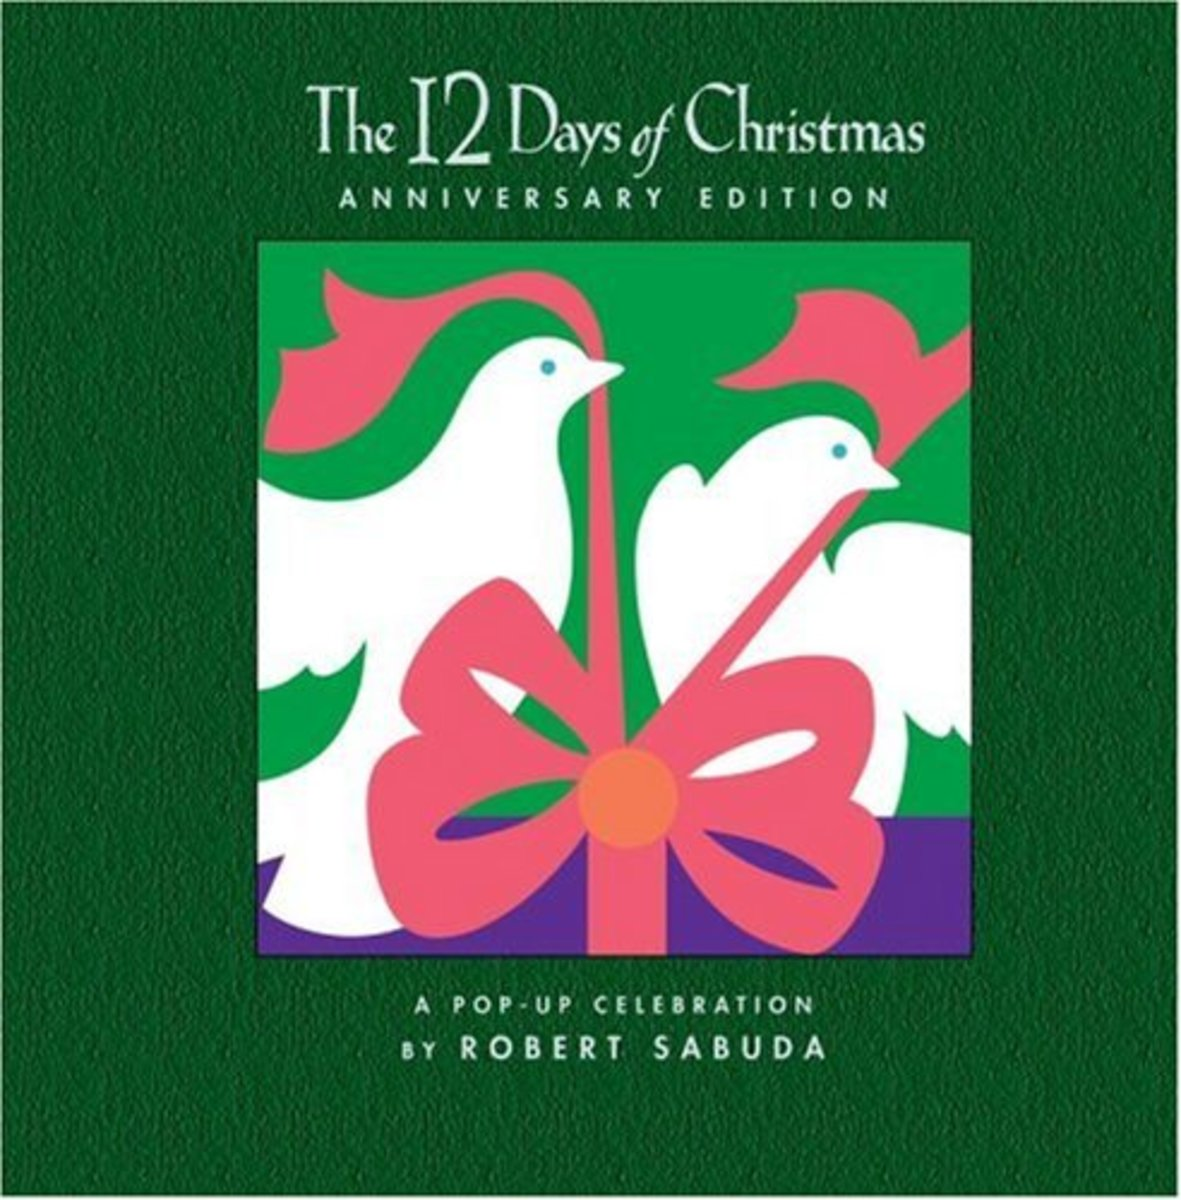 The 12 Days of Christmas by Robert Sabuda